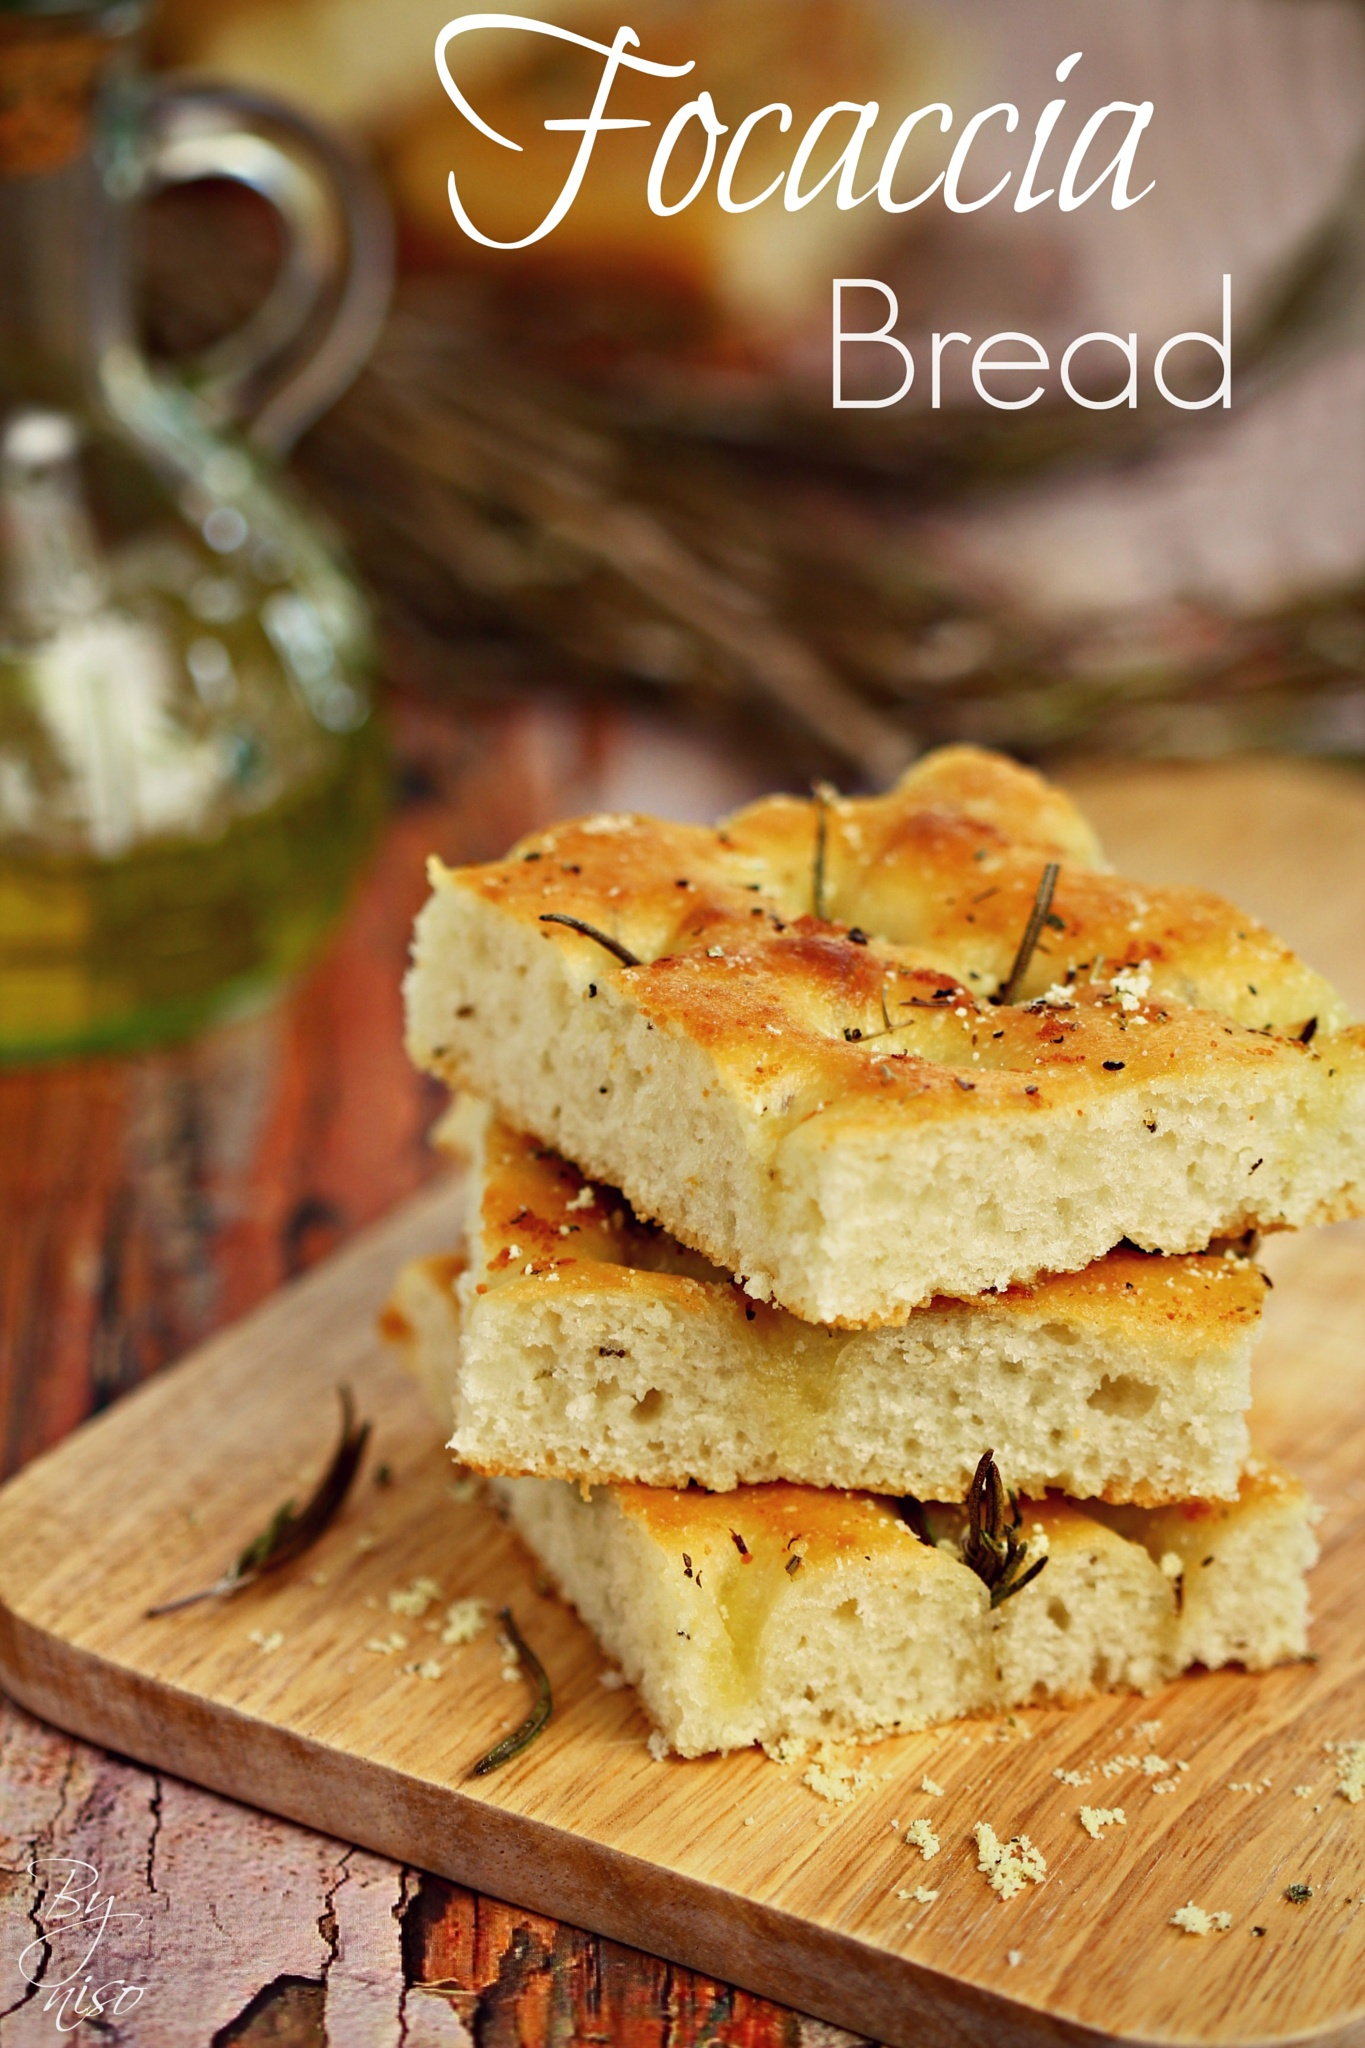 Focaccia bread by Nisreen Rahhal